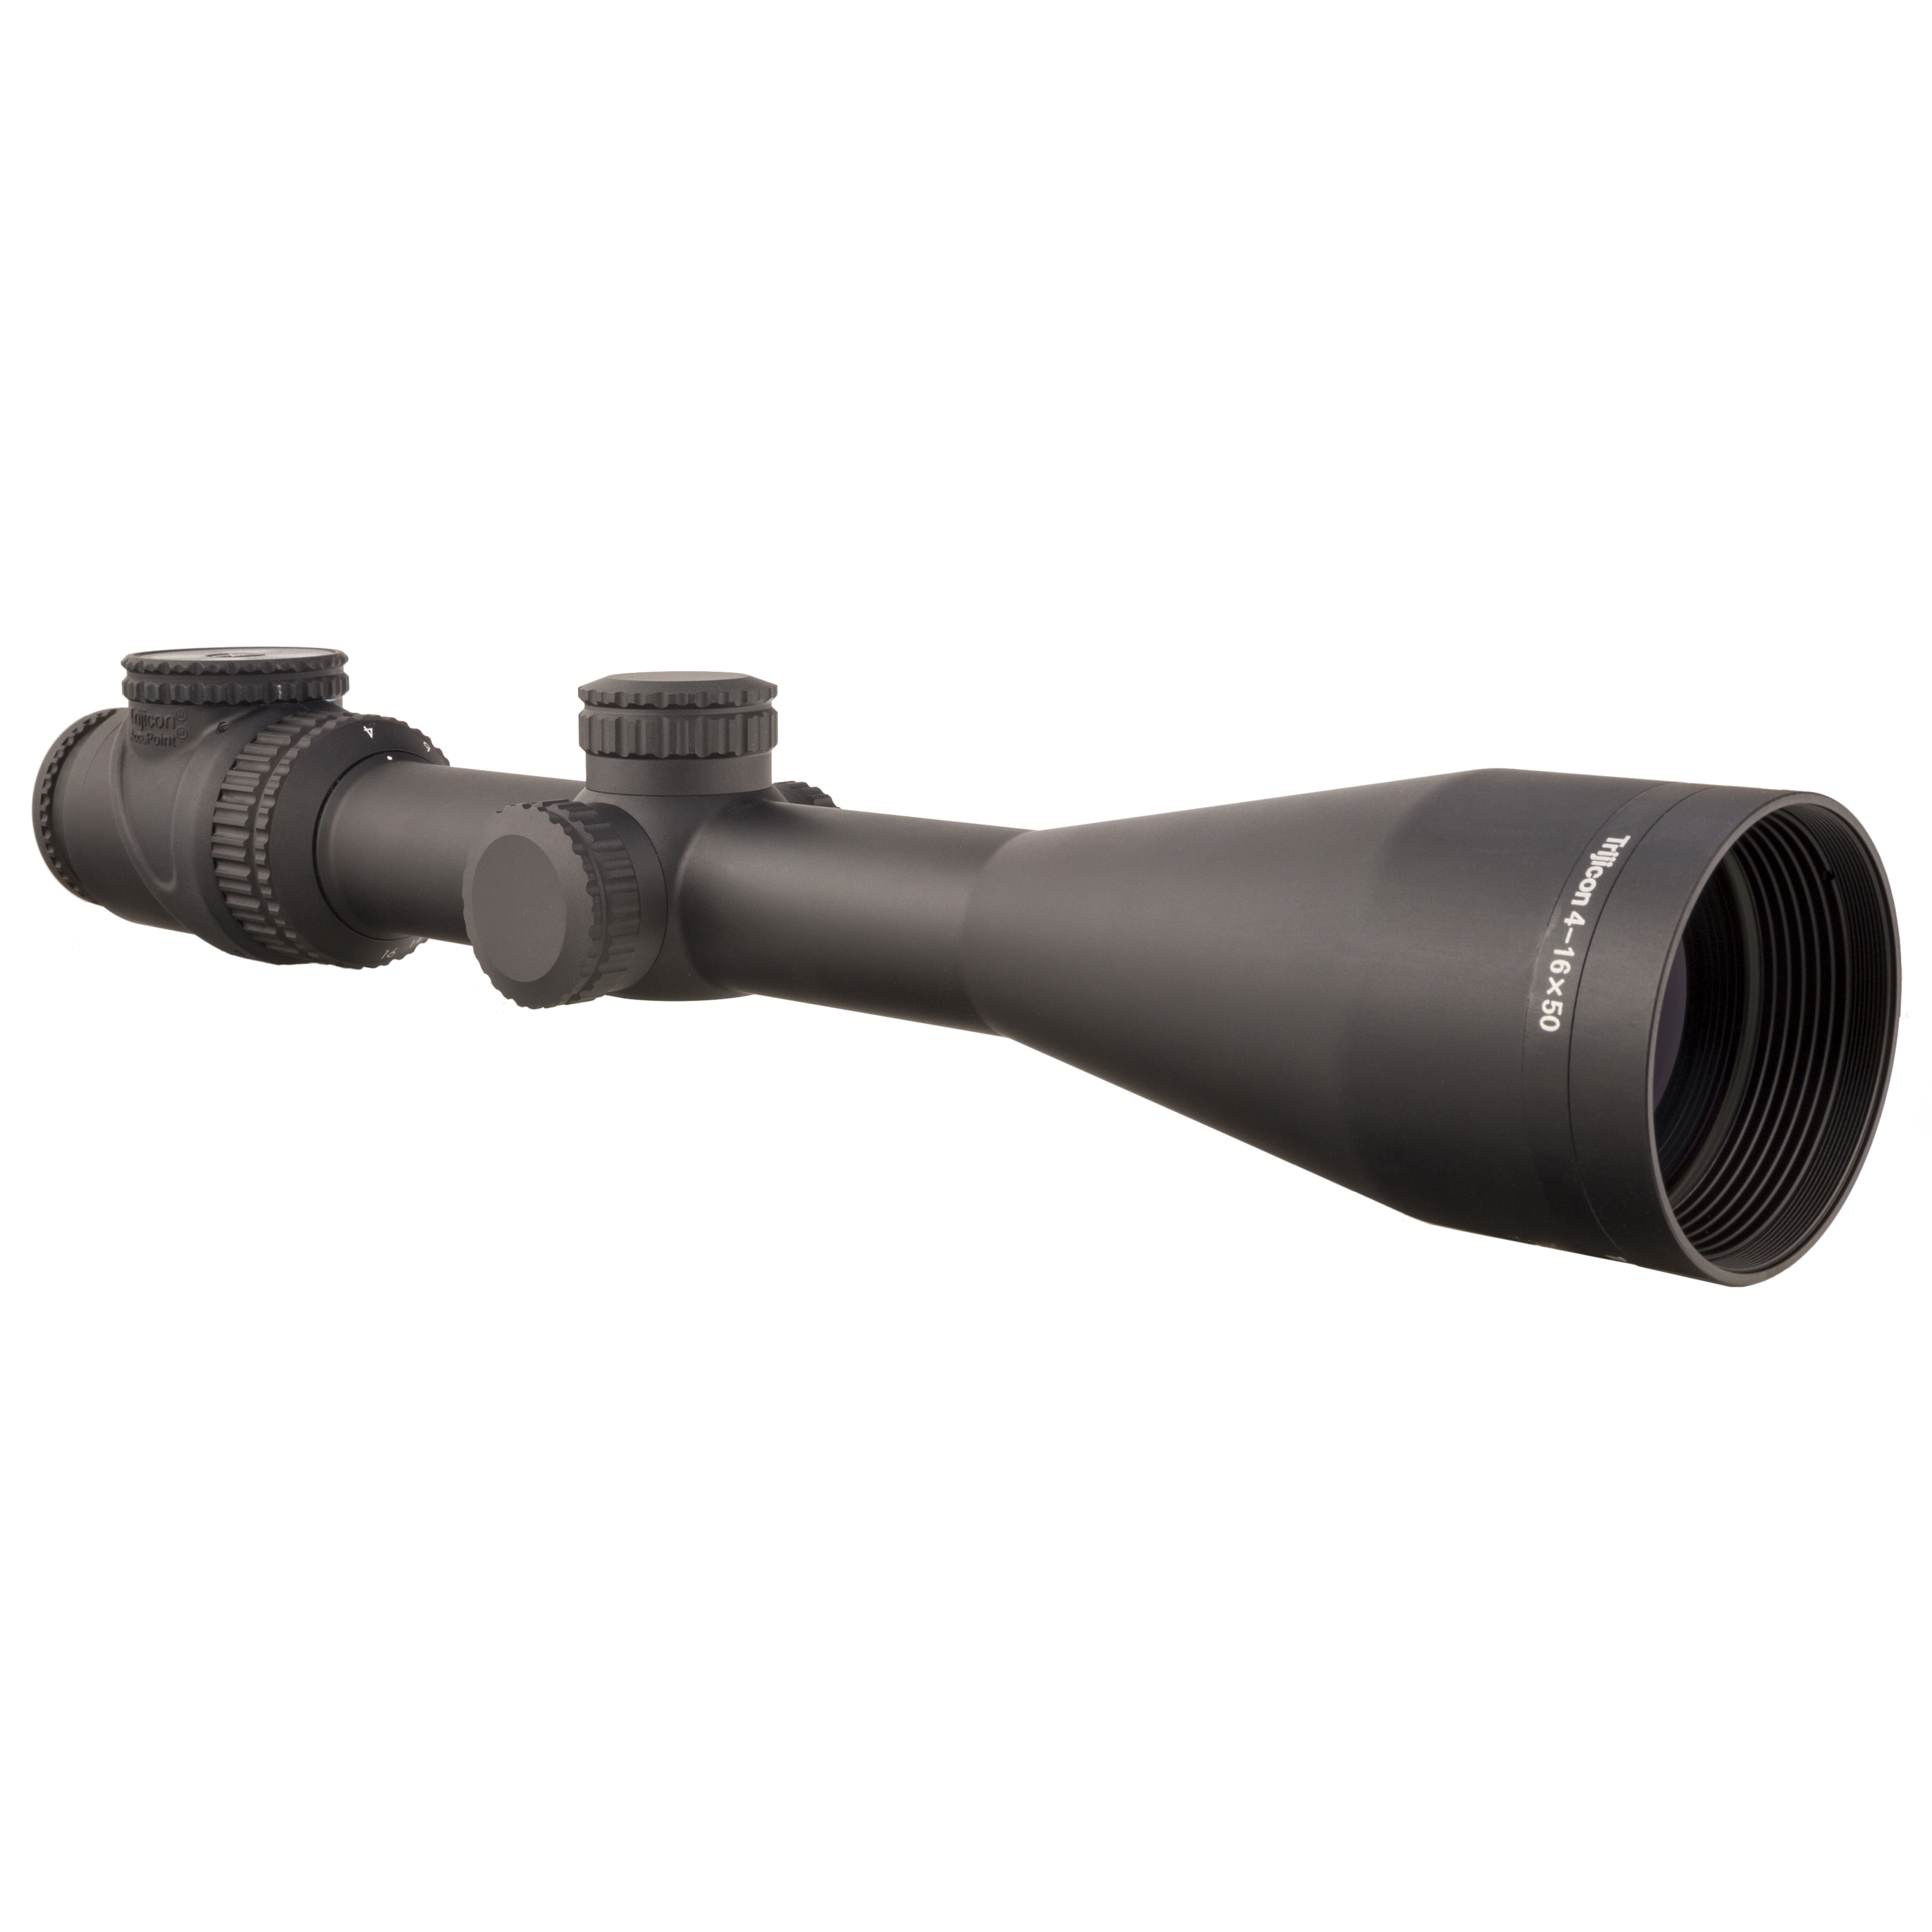 Click here to buy Trijicon AccuPoint 4-16x50mm Riflescope 30mm Tube, with BAC, Green Triangle Post Reticle, Black by Trijicon.